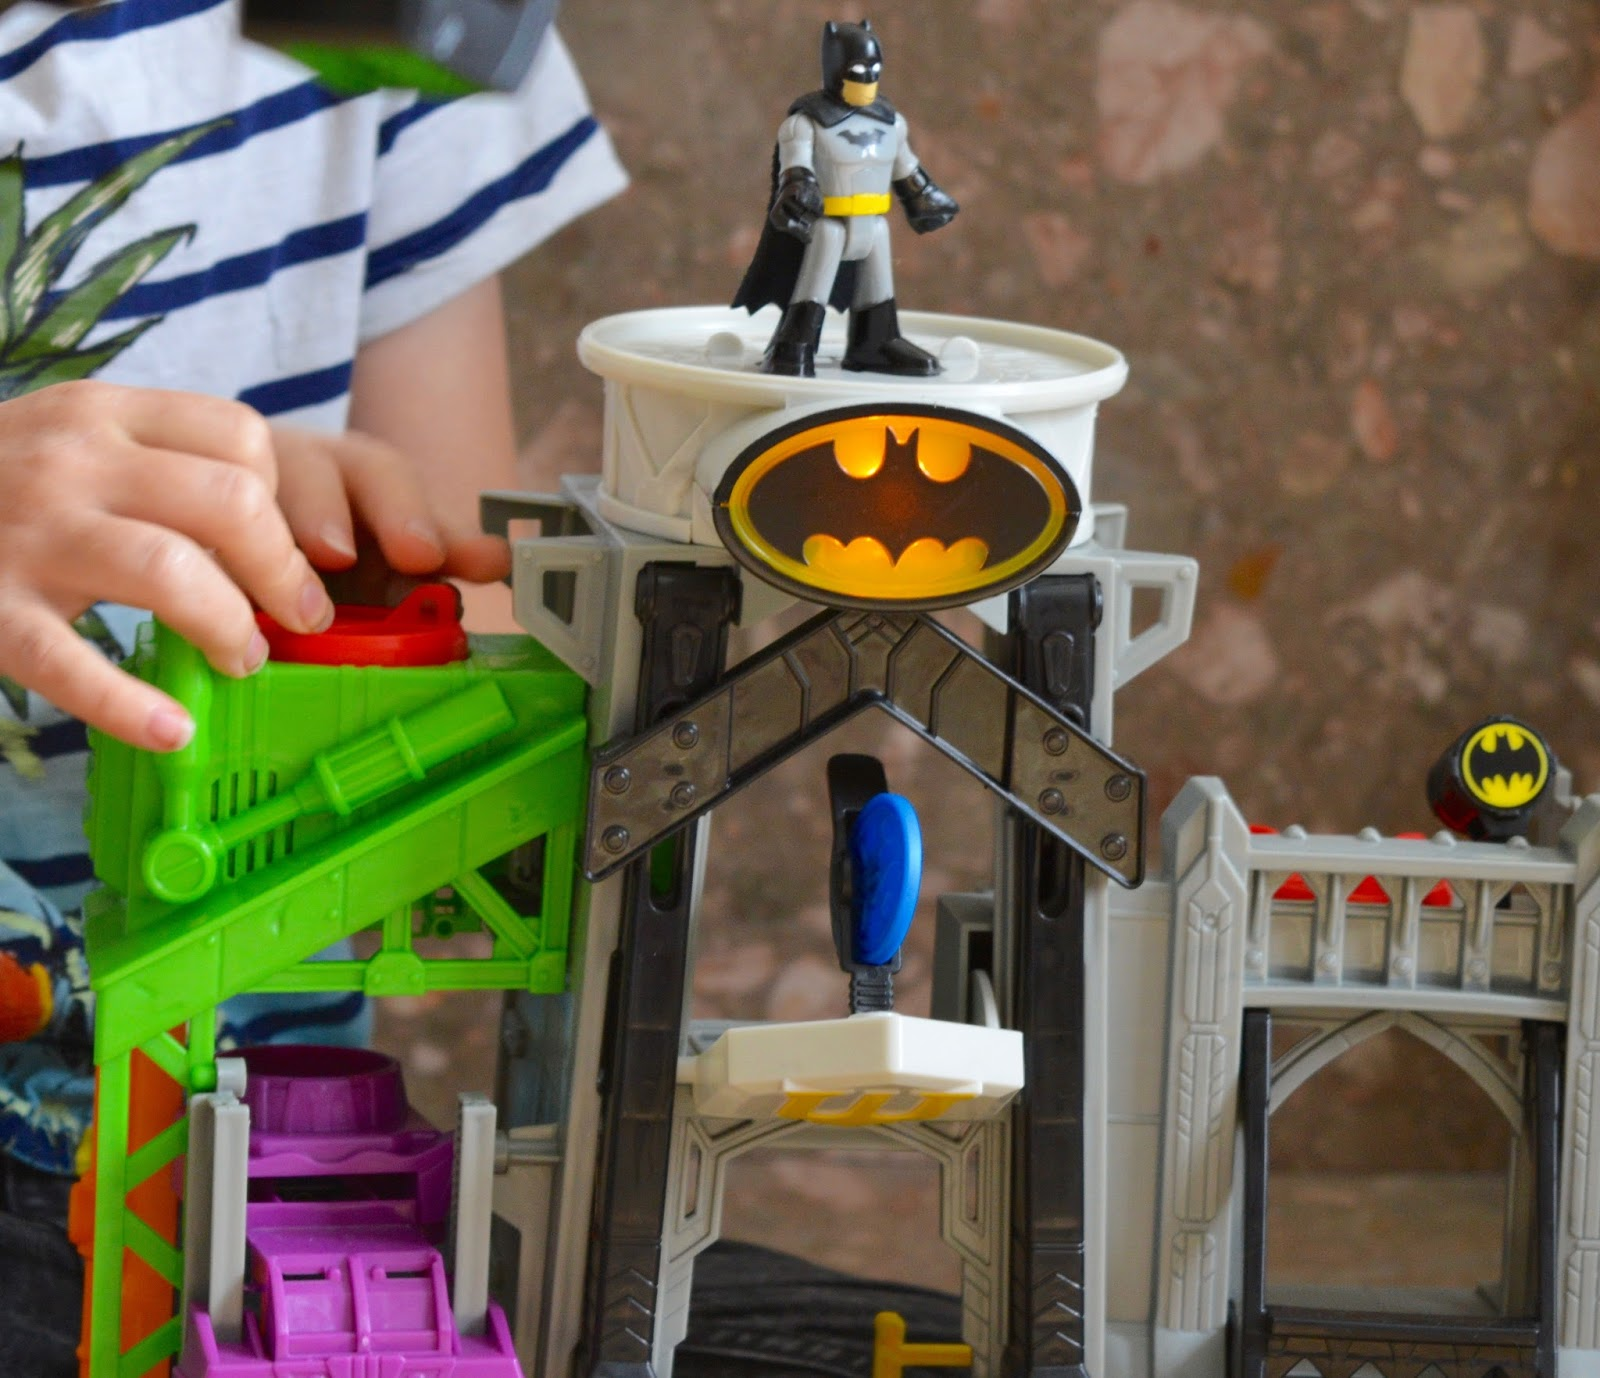 Fisher-Price Imaginext Super-Flight Gotham City | Batman Playset - A Review - Gotham City